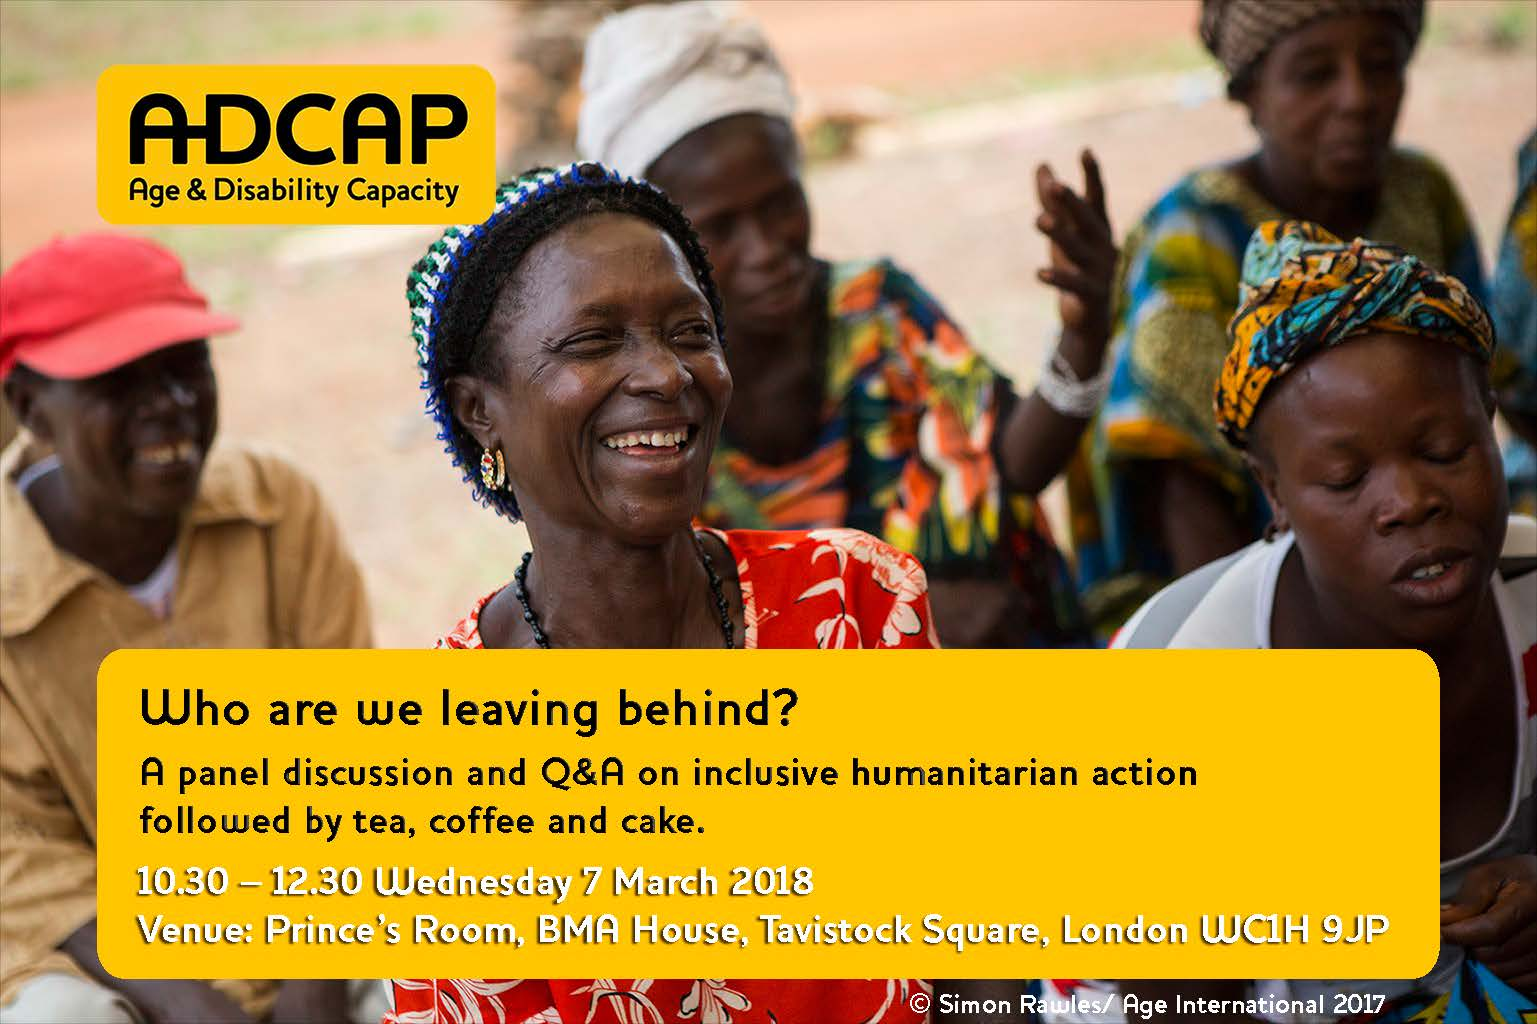 ADCAP - who are we leaving behind?